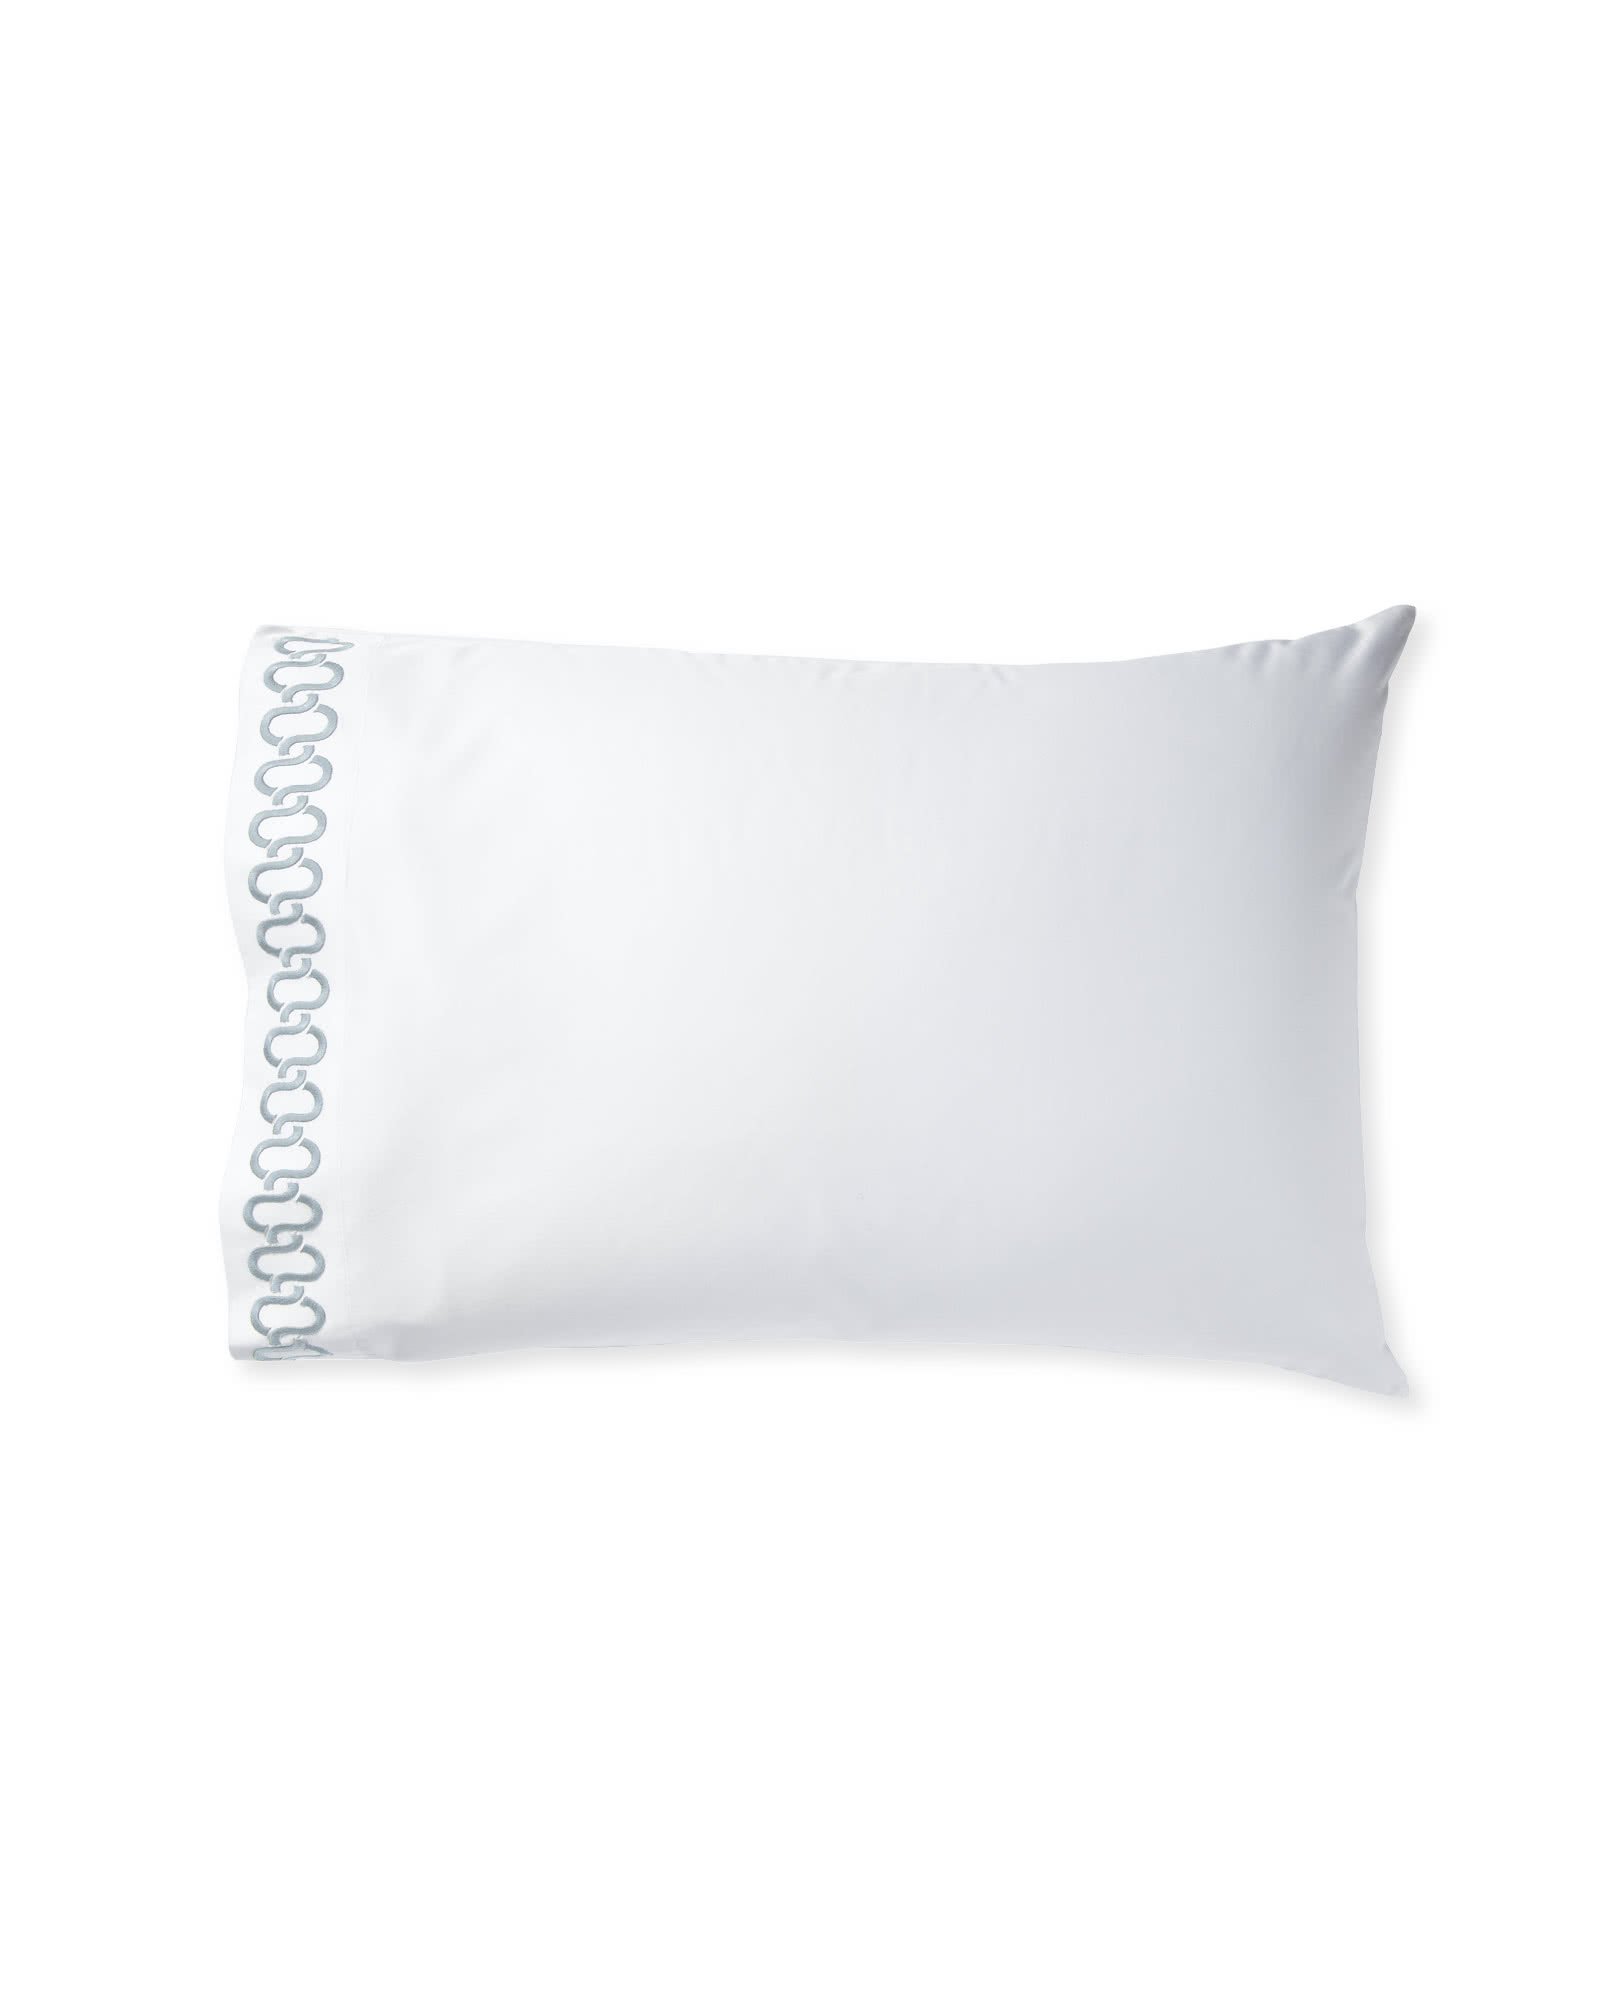 Extra Savoy Embroidered Pillowcases (Set of 2)